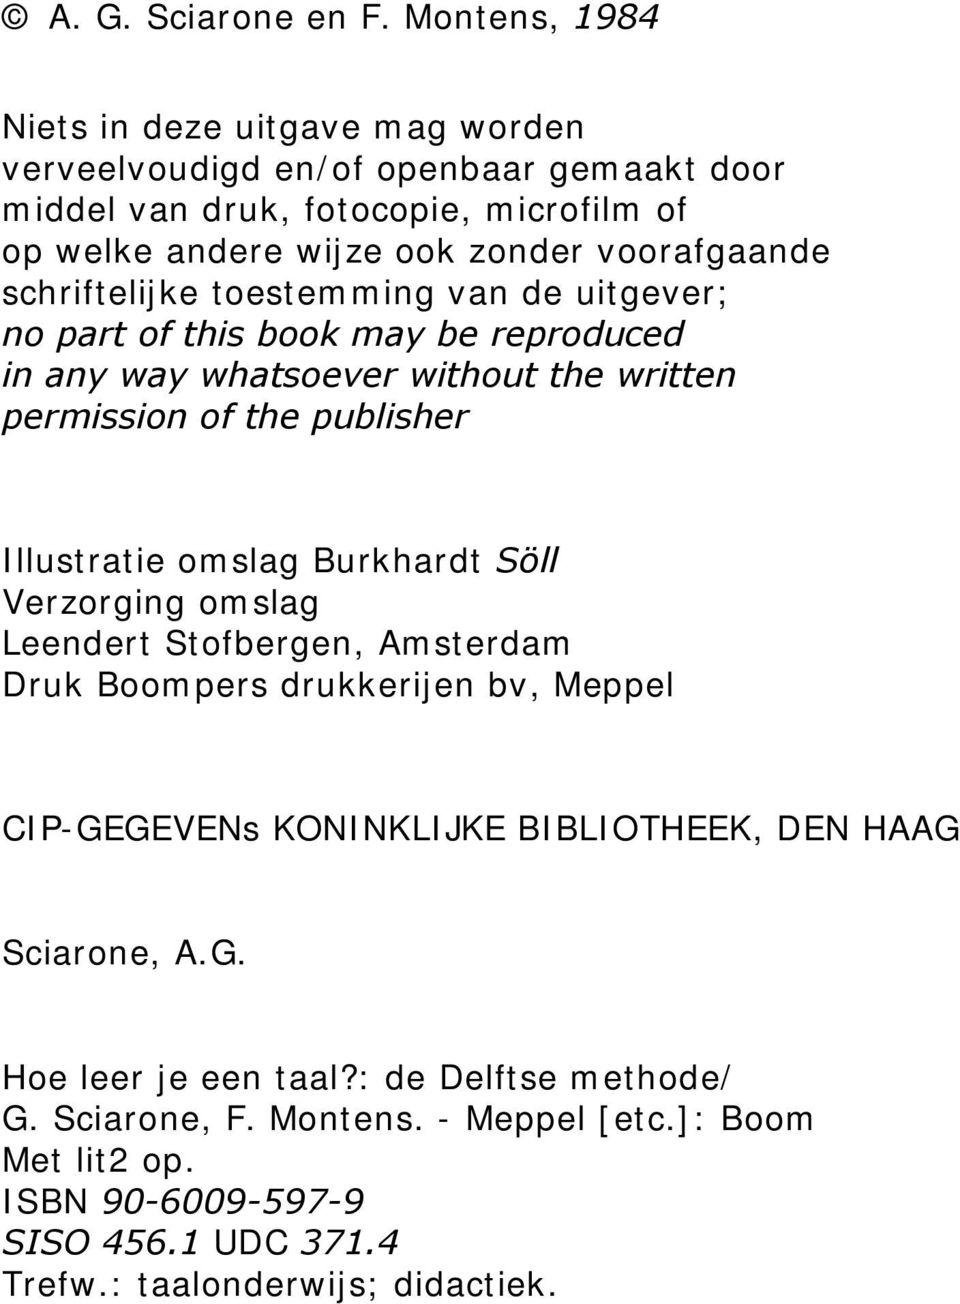 schriftelijke toestemming van de uitgever; no part of this book may be reproduced in any way whatsoever without the written permission of the publisher Illustratie omslag